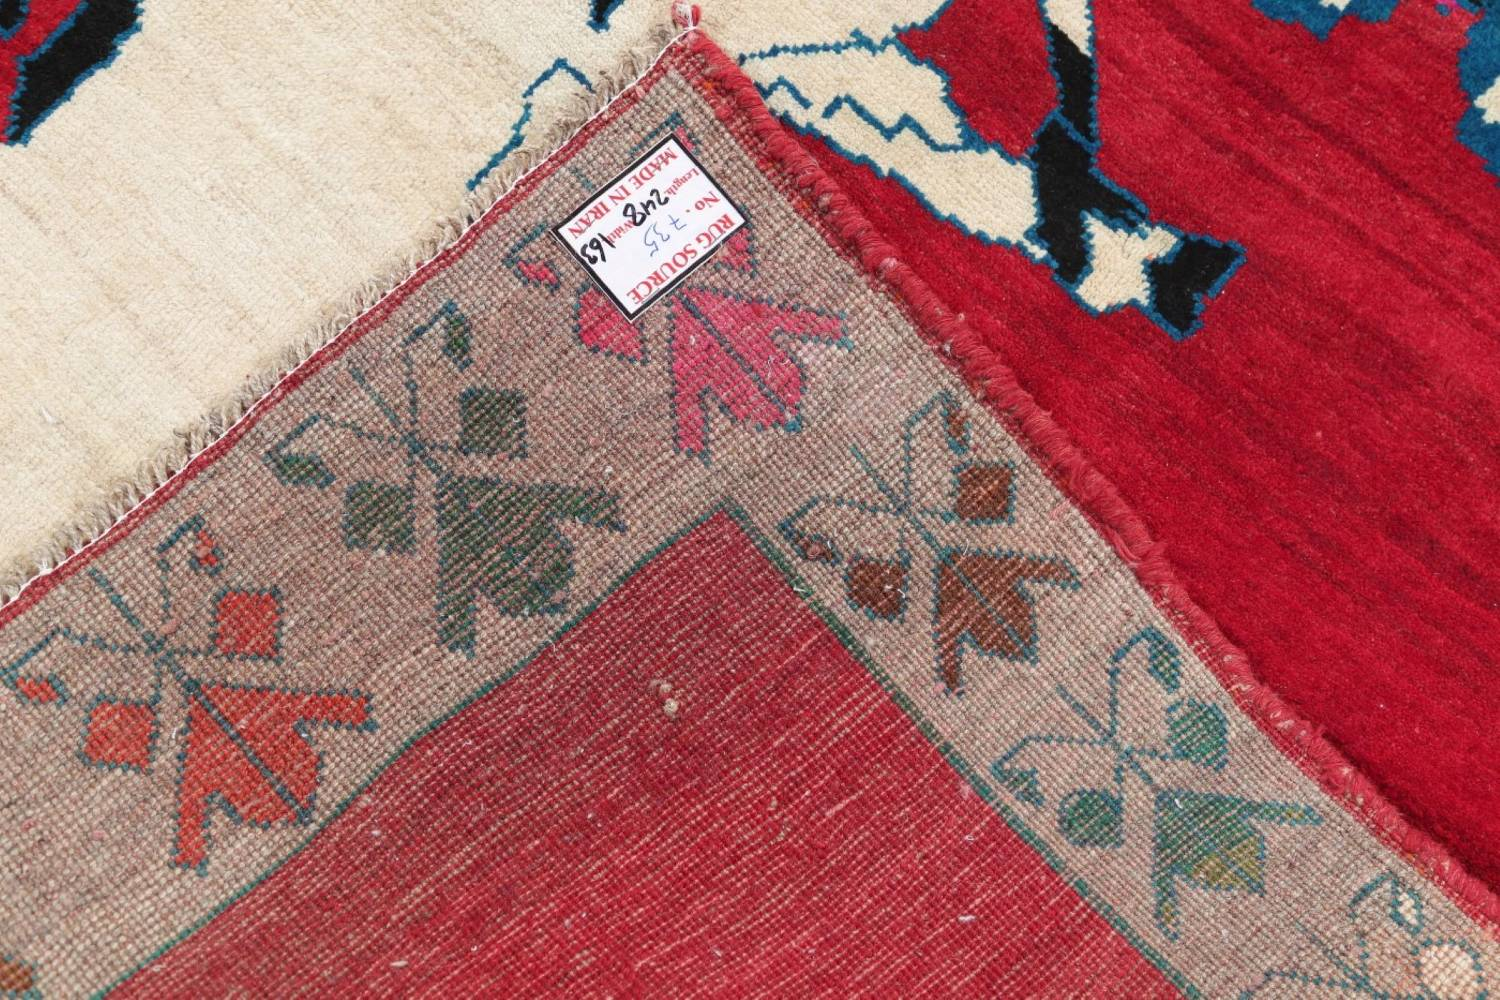 Animal Pictorial Gabbeh Persian Hand-Knotted 5x8 Wool Area Rug image 19